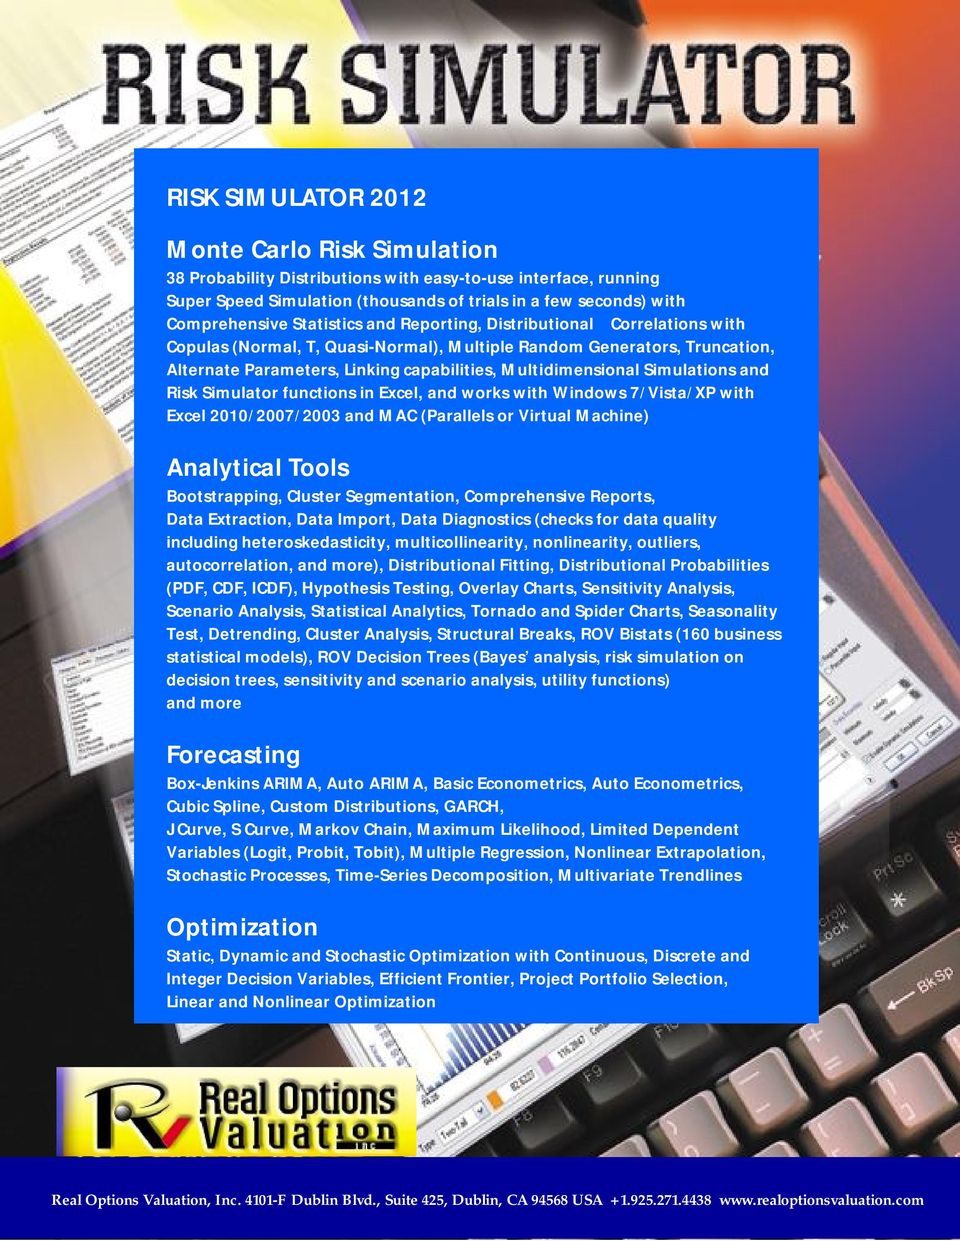 Simulations and Risk Simulator functions in Excel, and works with Windows 7/Vista/XP with Excel 2010/2007/2003 and MAC (Parallels or Virtual Machine) Analytical Tools Bootstrapping, Cluster